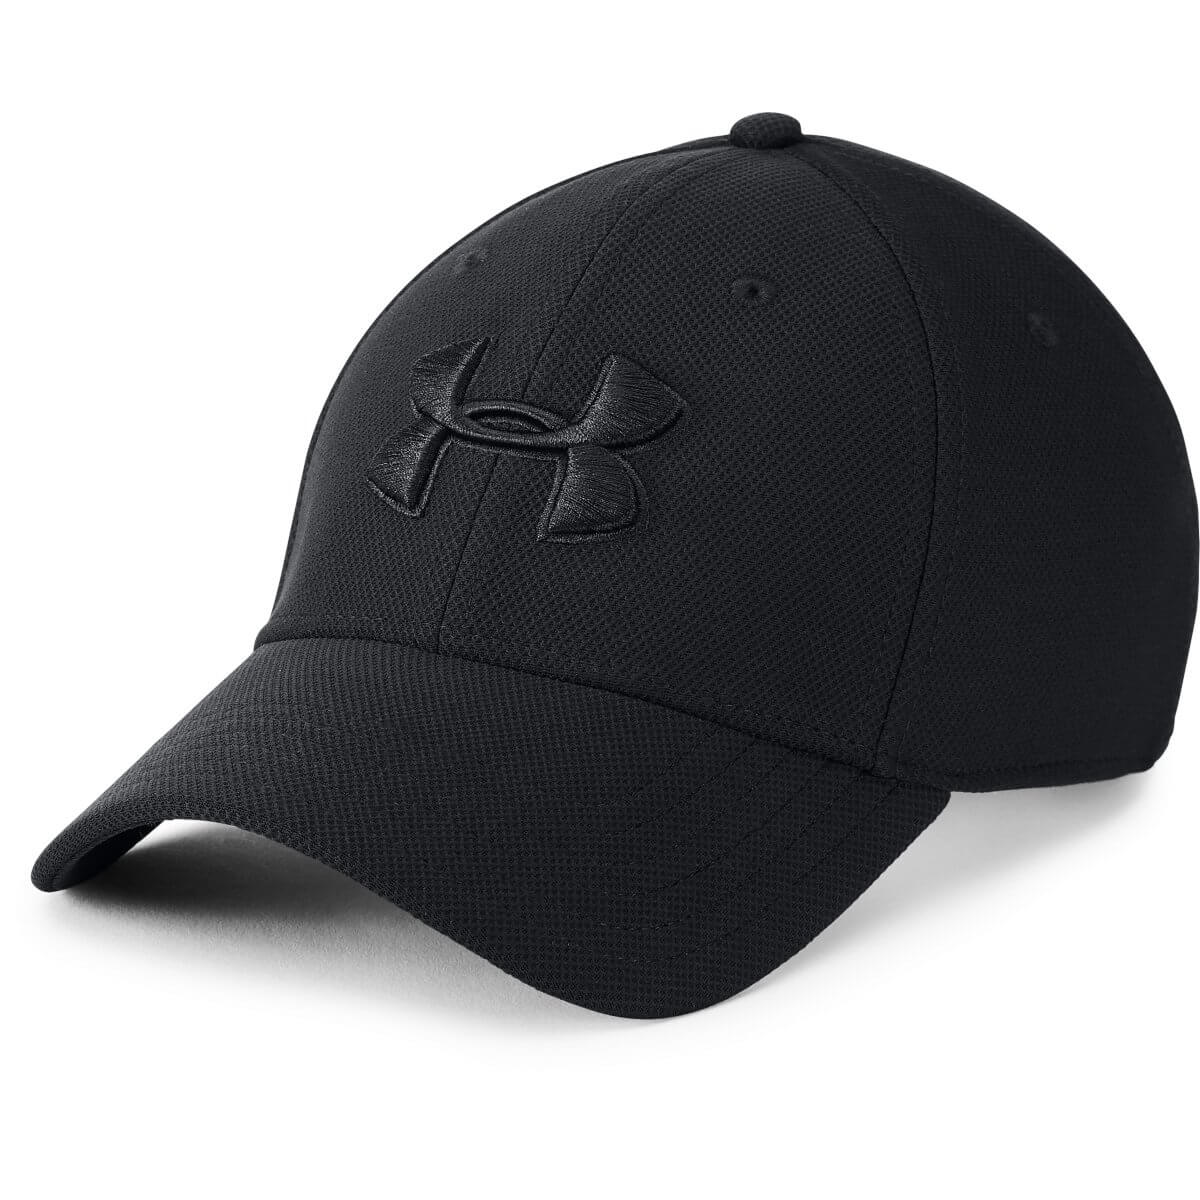 Under Armour Šiltovka Men's Blitzing 3.0 Cap BlackBlack ML